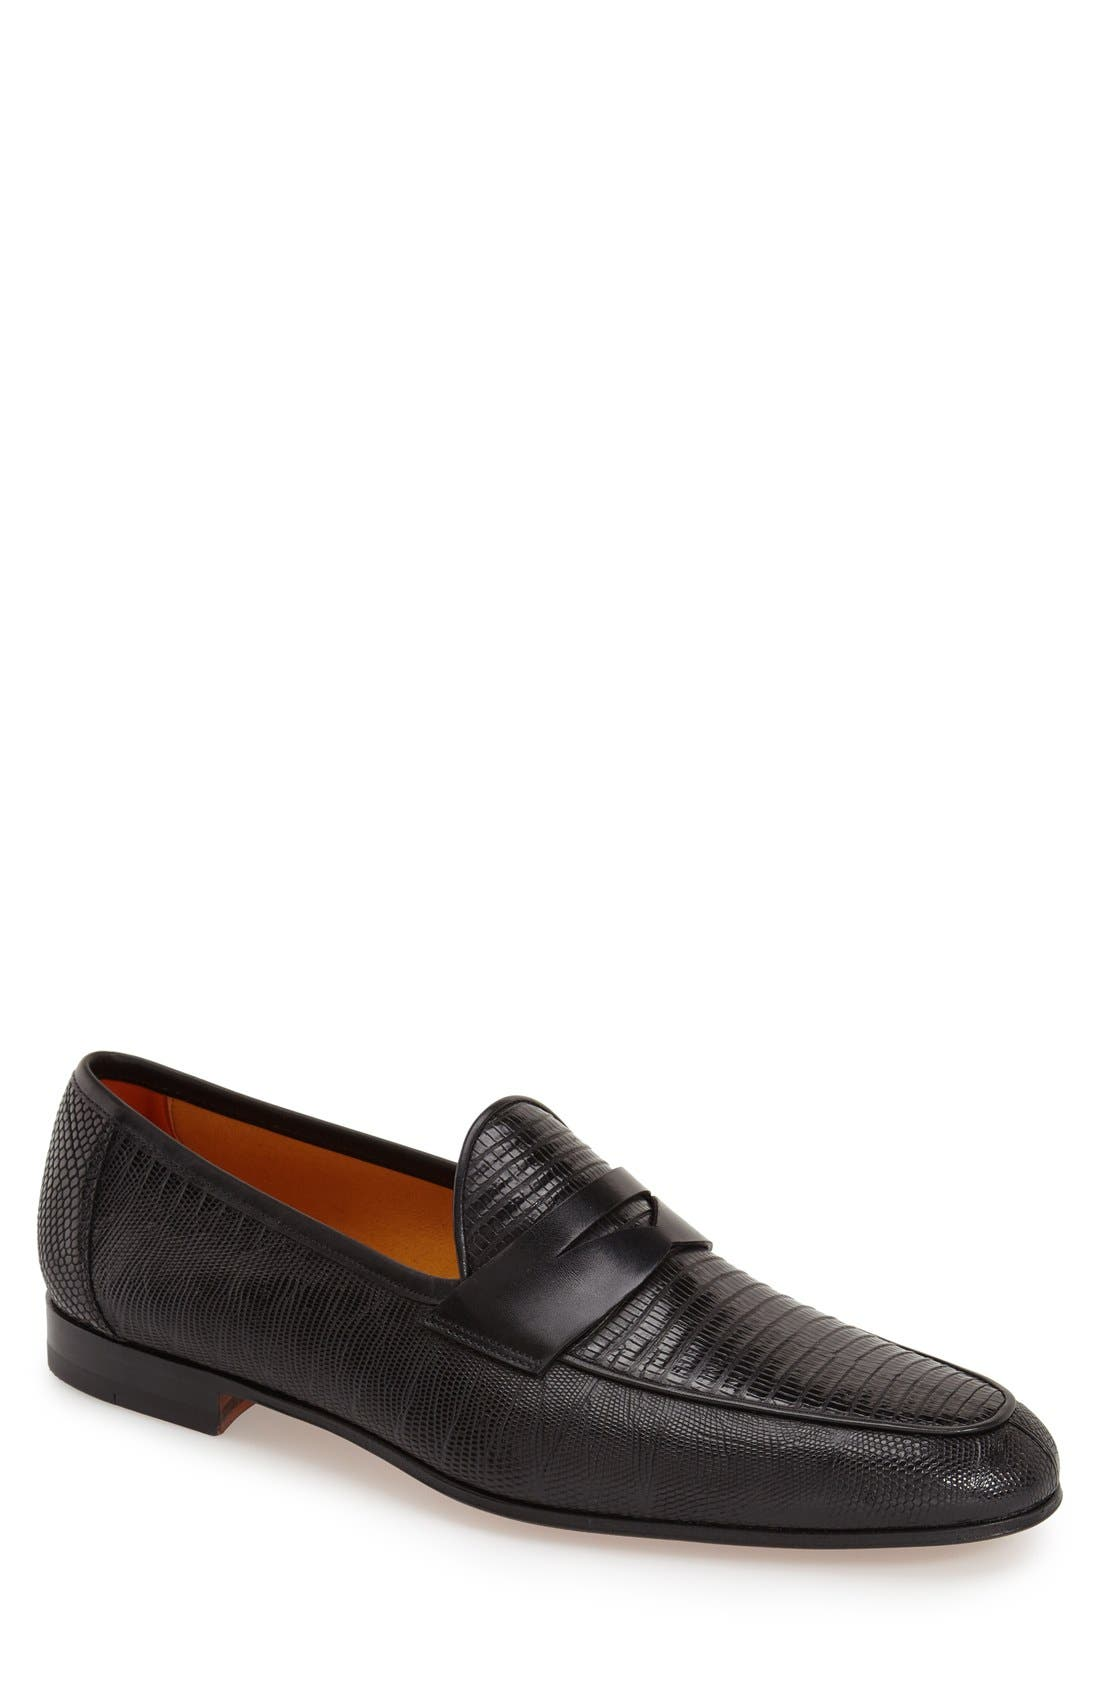 'Camerino' Lizard Penny Loafer,                         Main,                         color, 001